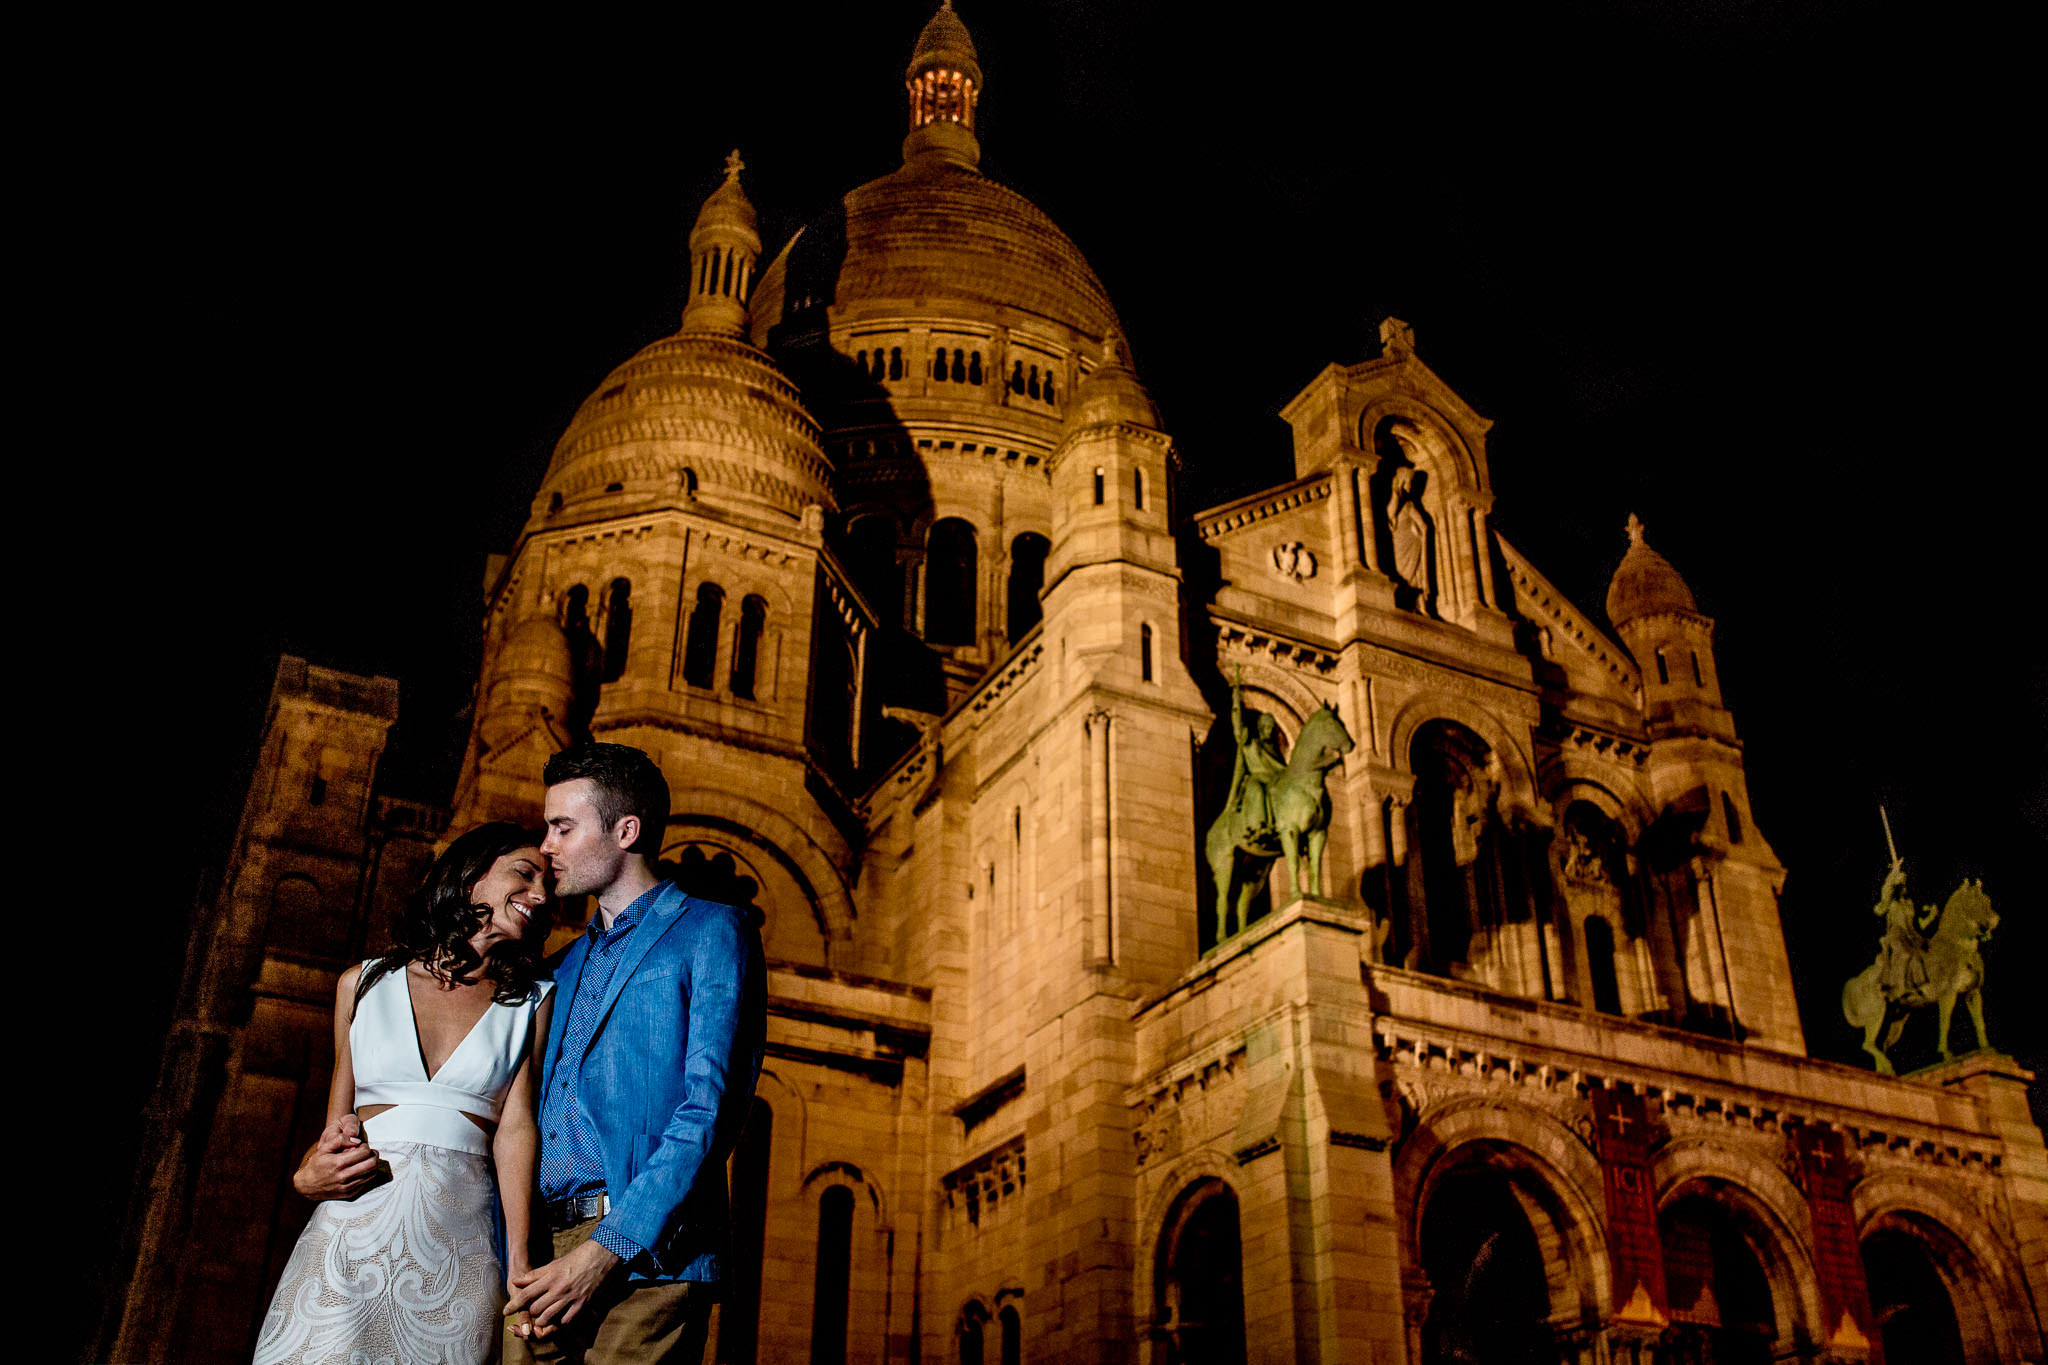 Wedding photo in Paris at Sacre Coeur in color with bride and groom